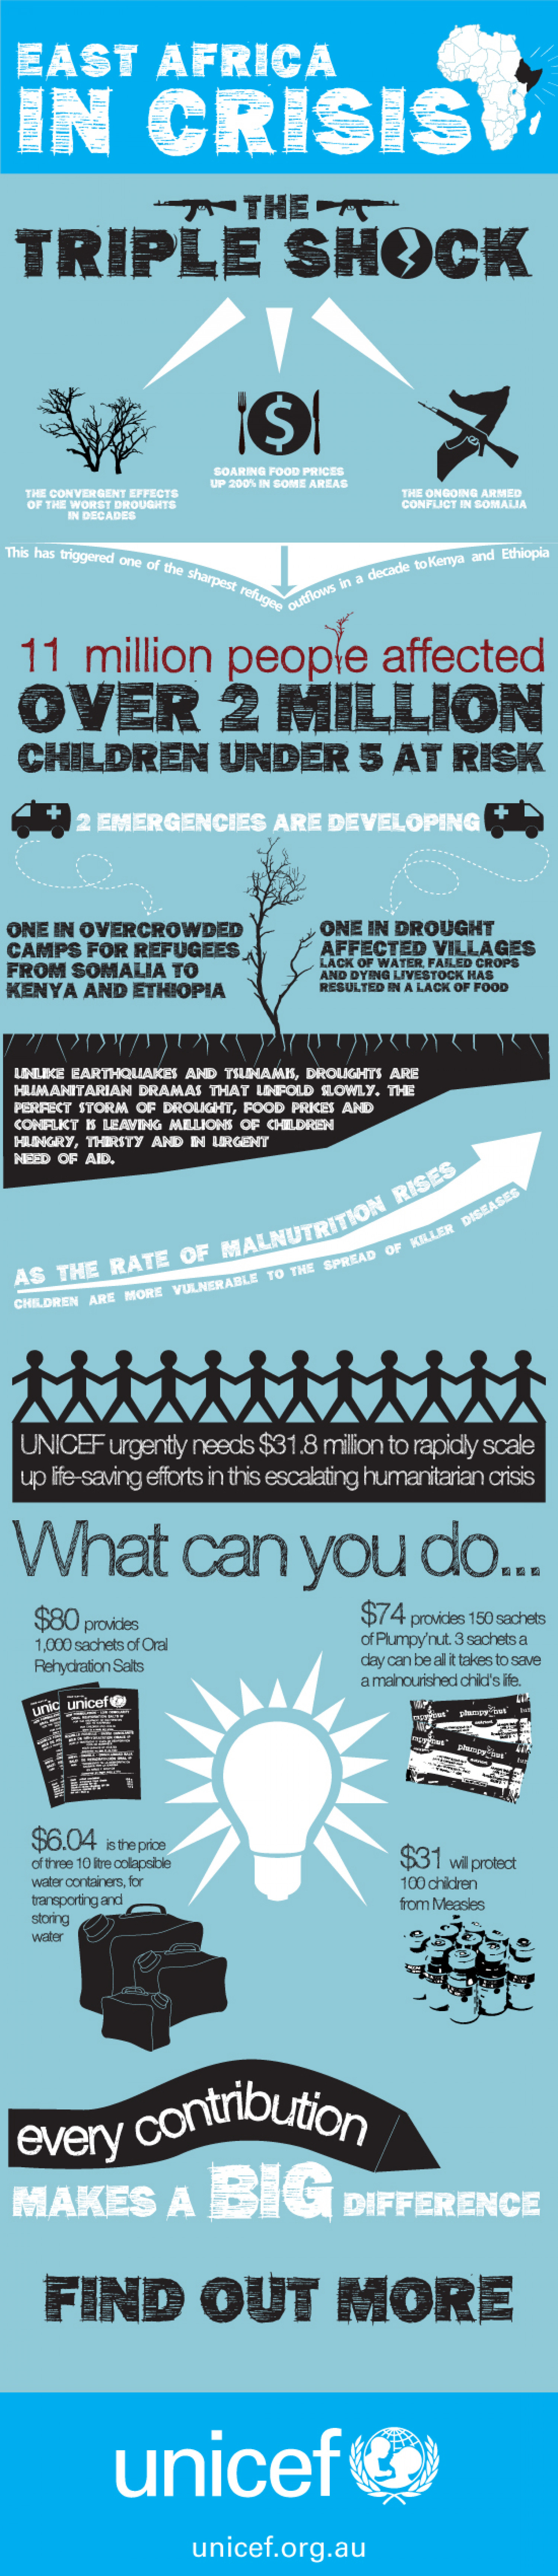 East Africa Humanitarian Crisis - Unicef Infographic